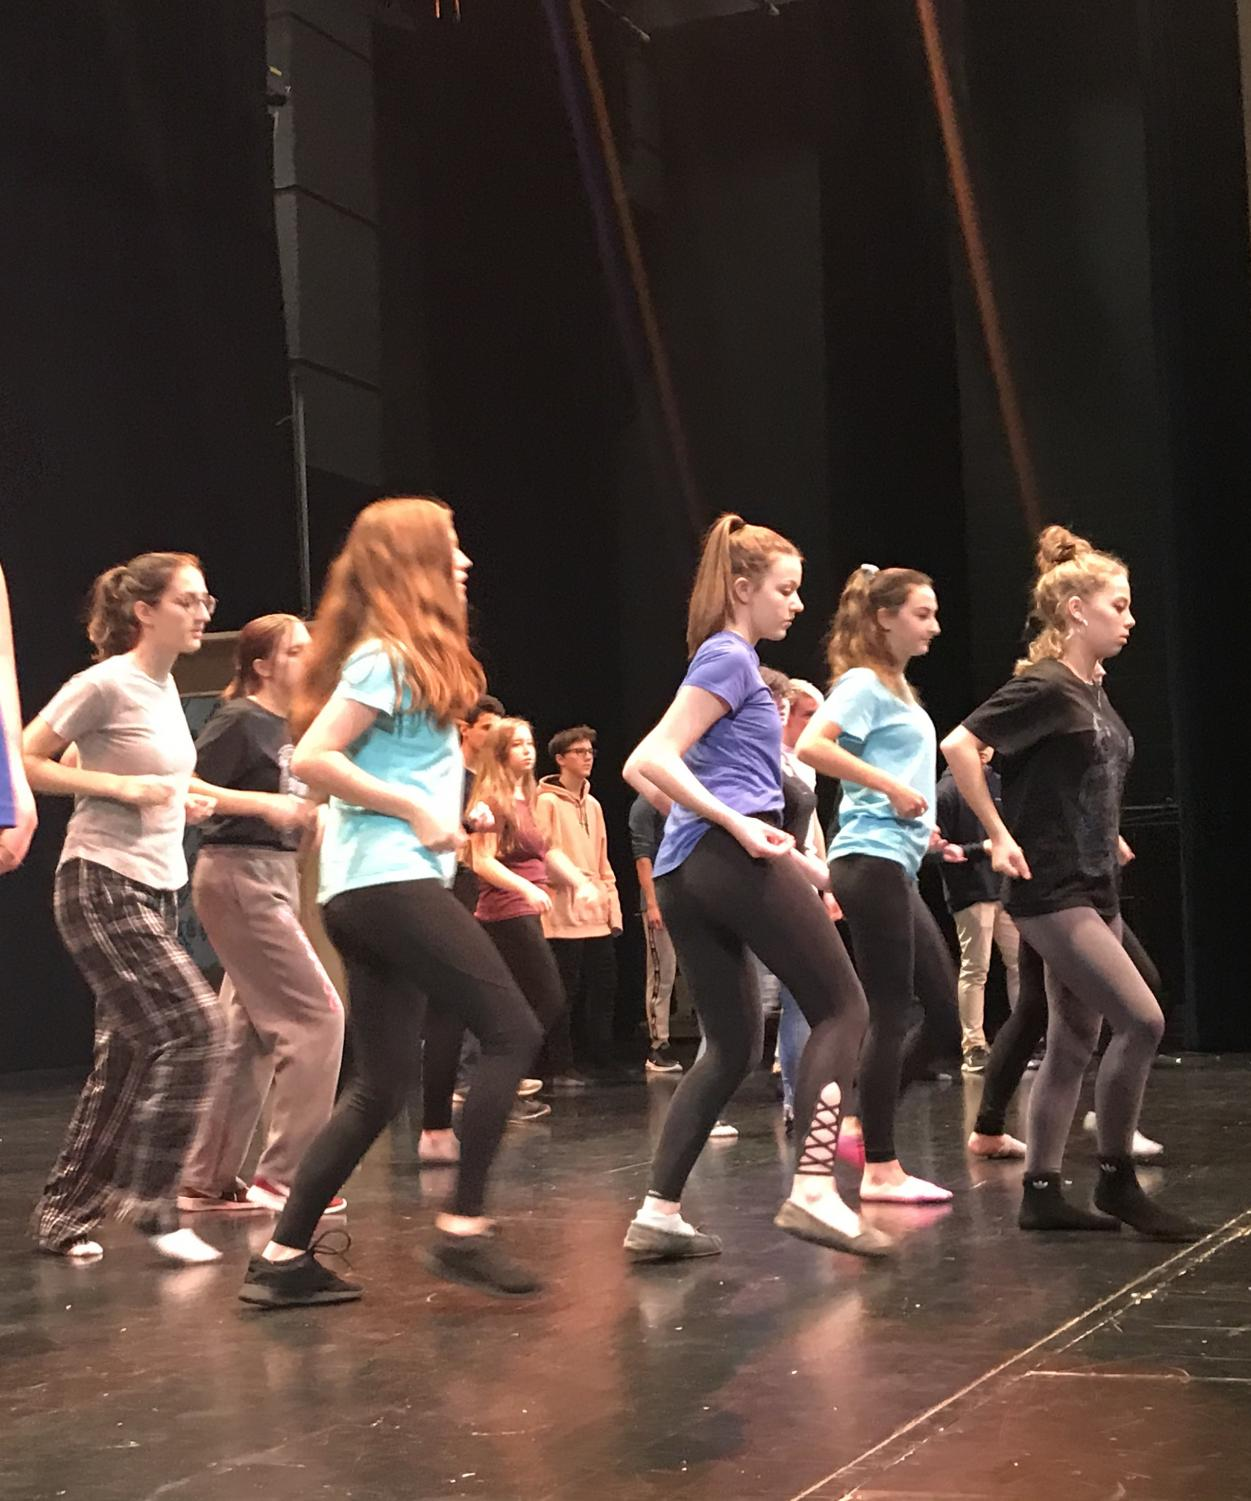 """As cast members rehearse their dance routines, they prepare for the """"West Side Story"""" performances. """"A major difference from 'High School Musical' is the dancing because it was modern day dances. 'West Side Story' is way more theatrical dancing, more founded in elements of ballet,"""" Wells said. They started performing in December after auditions."""